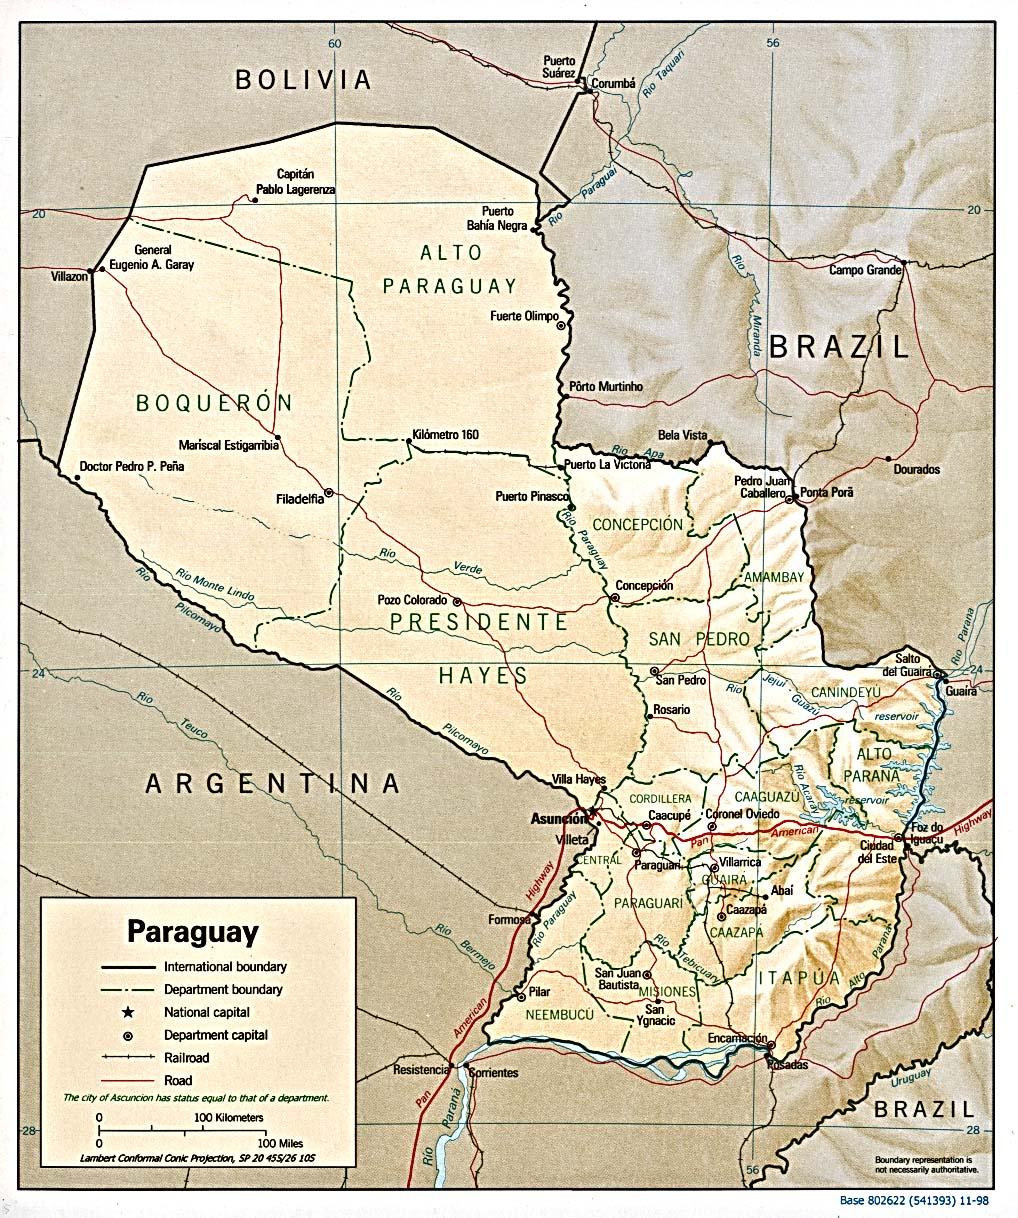 Paraguay Maps - Perry-Castañeda Map Collection - UT Library Online